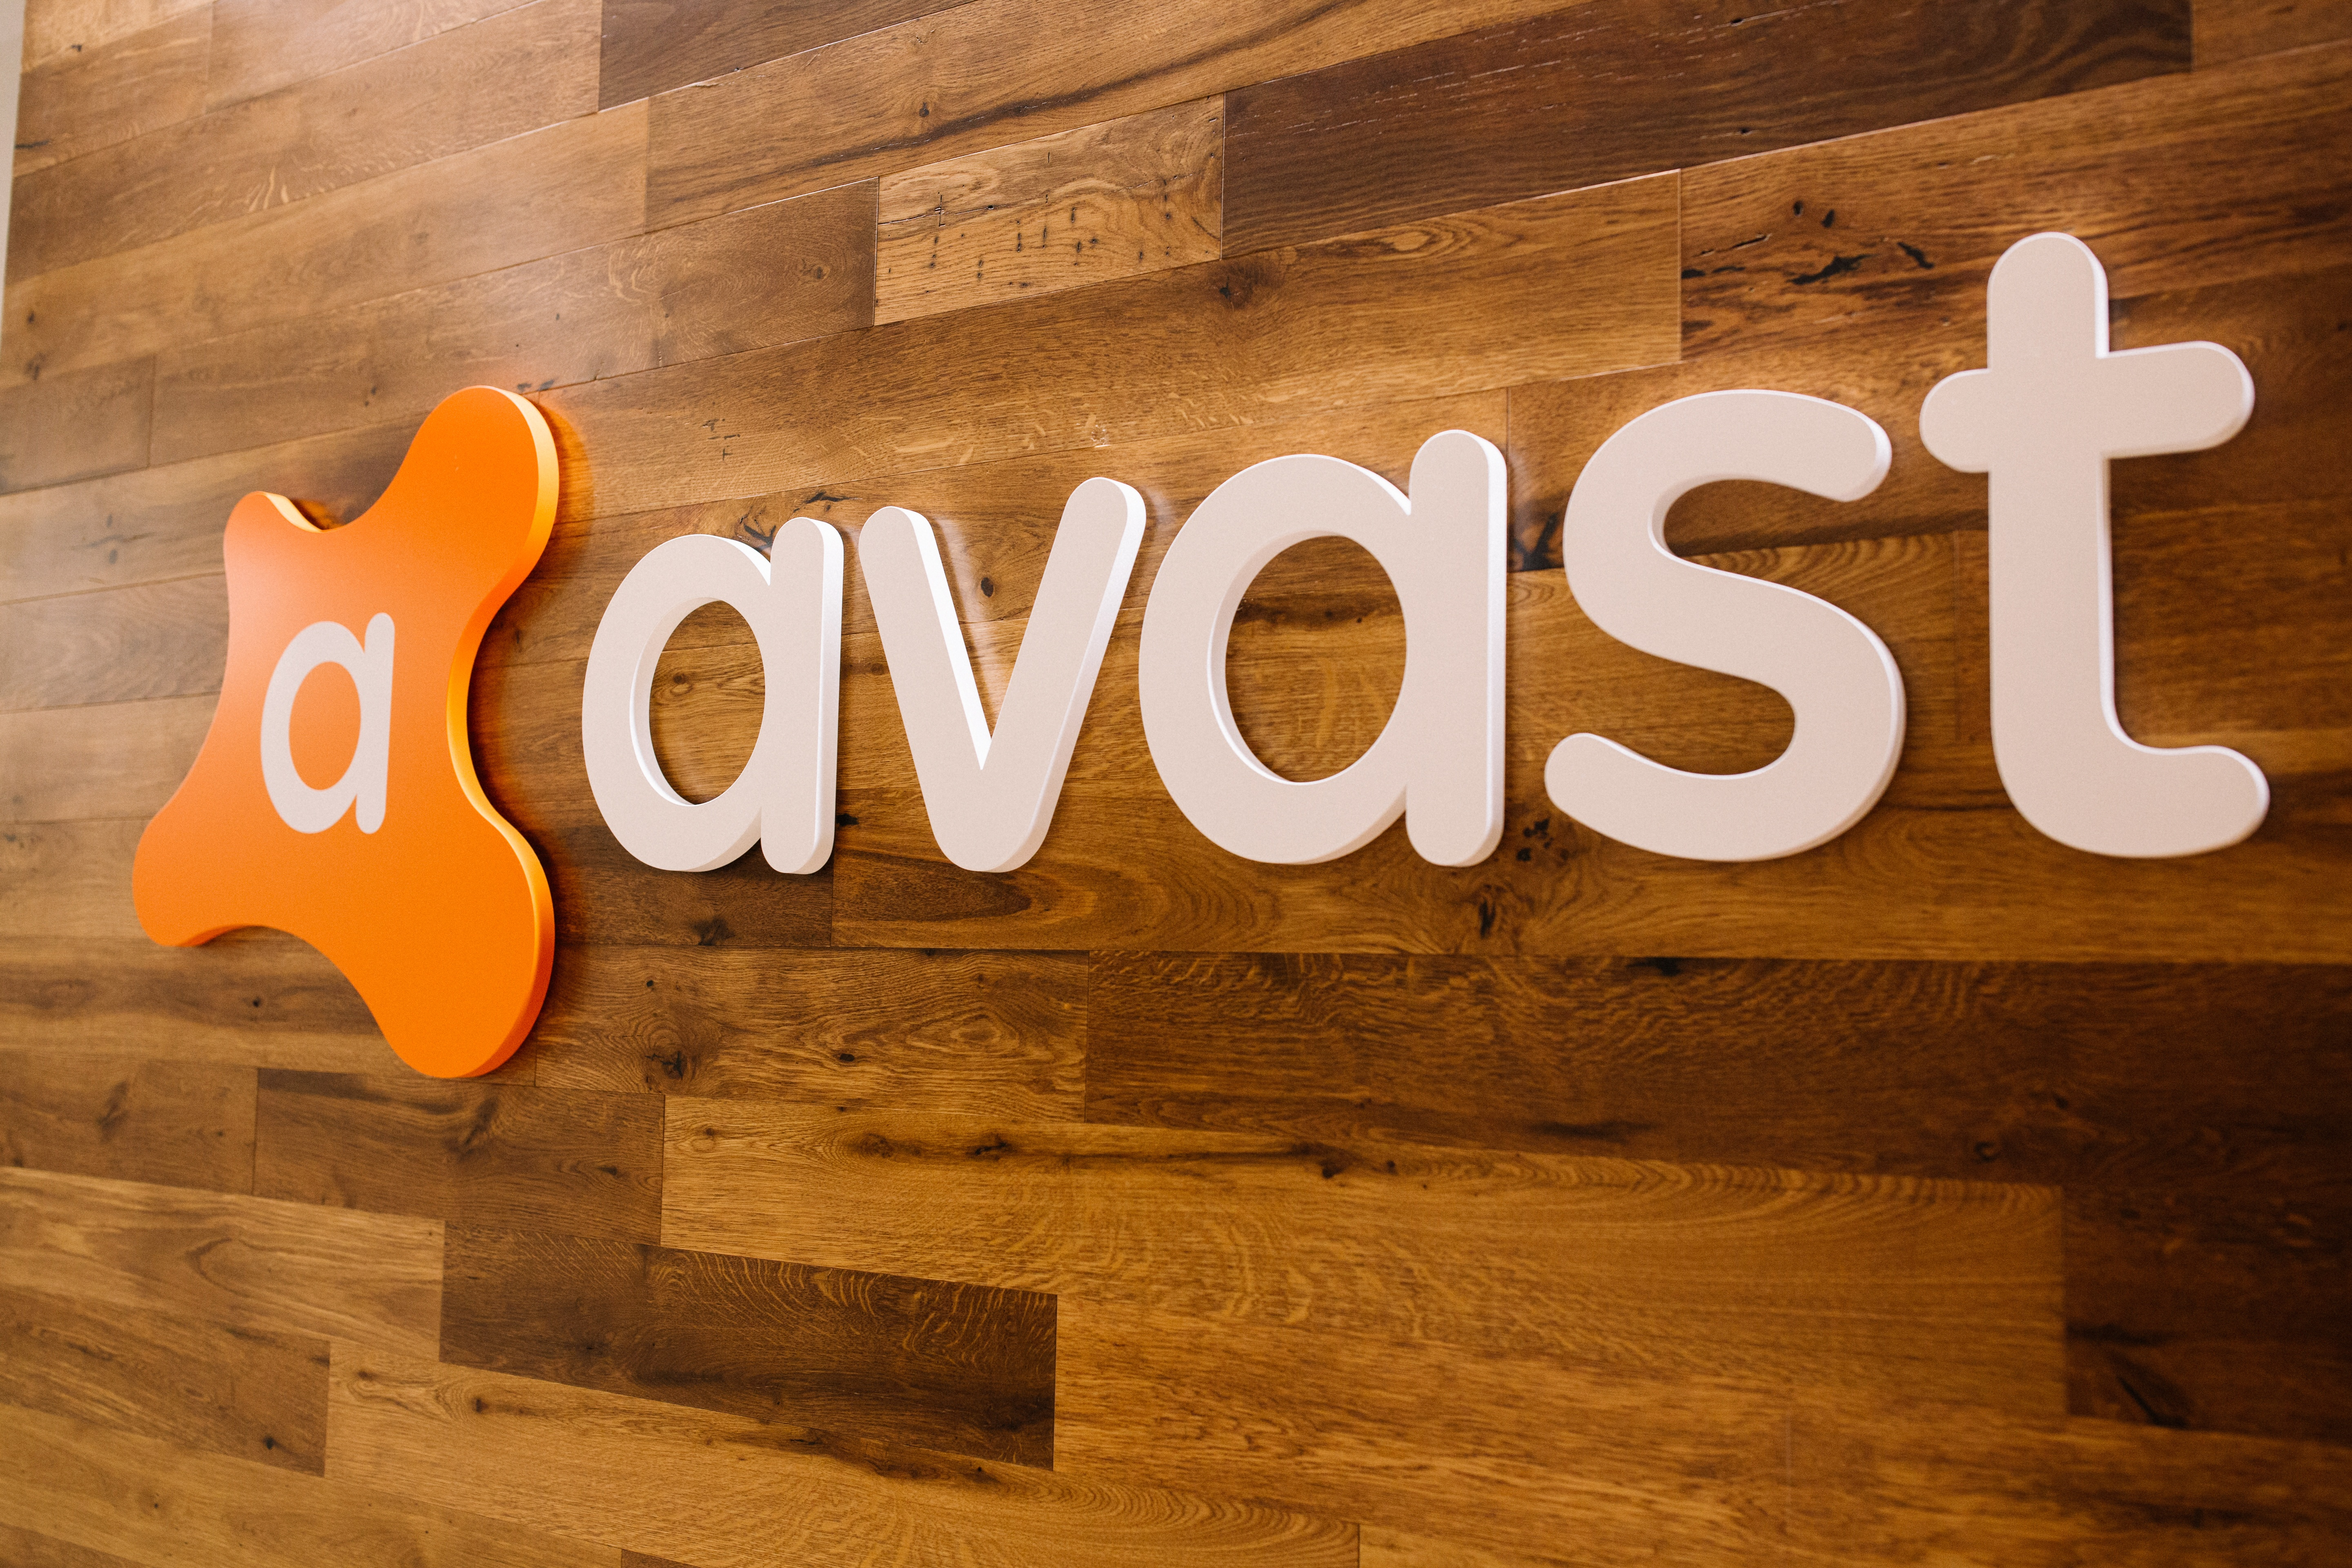 Avast Exposes the Risks of Crypto-Mining to Unaware Users